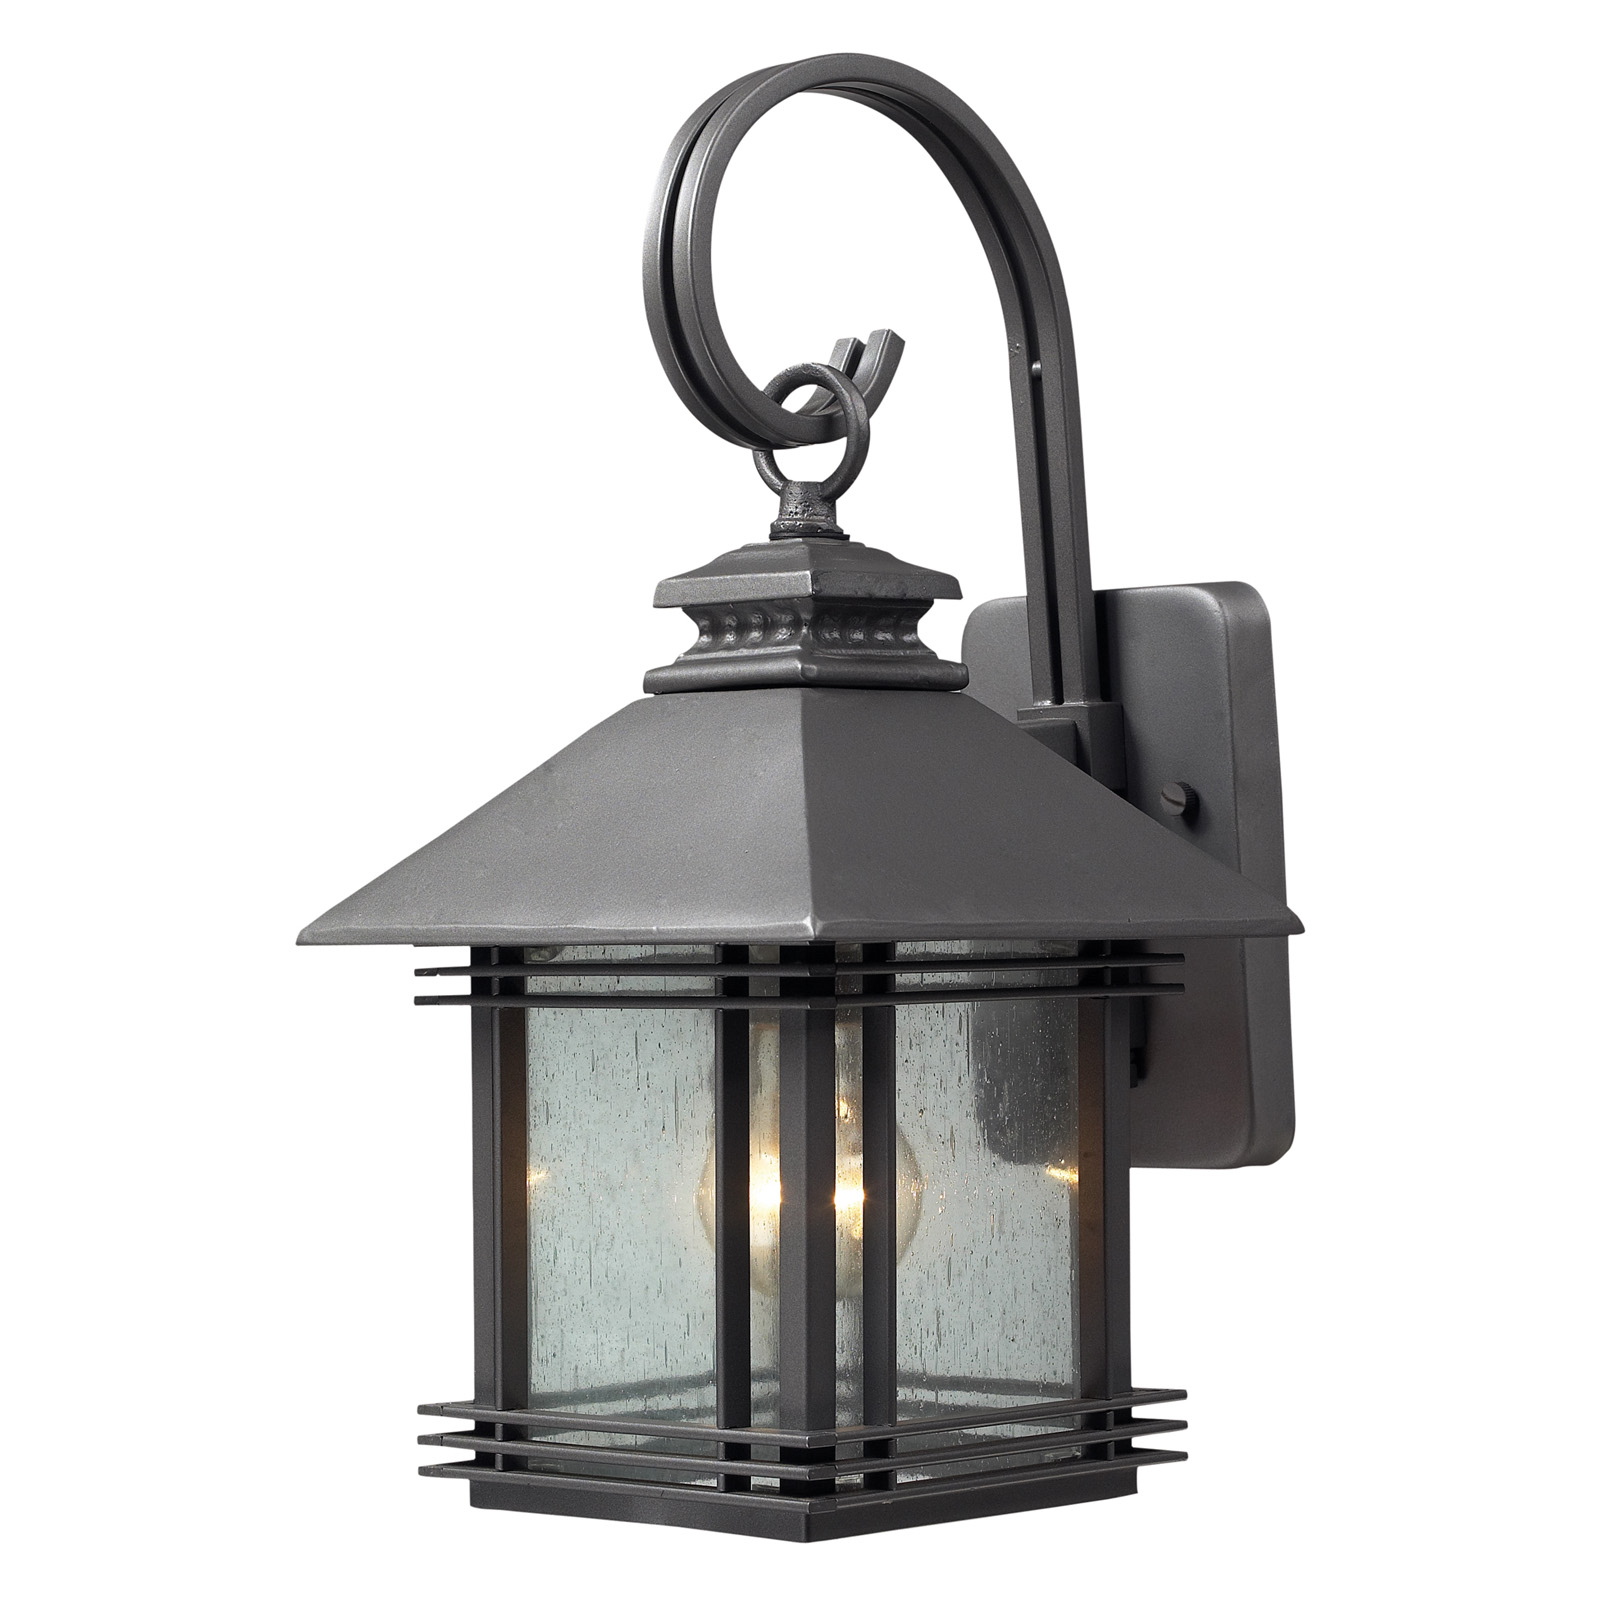 elk lighting blackwell 4230 outdoor sconce graphite outdoor wall